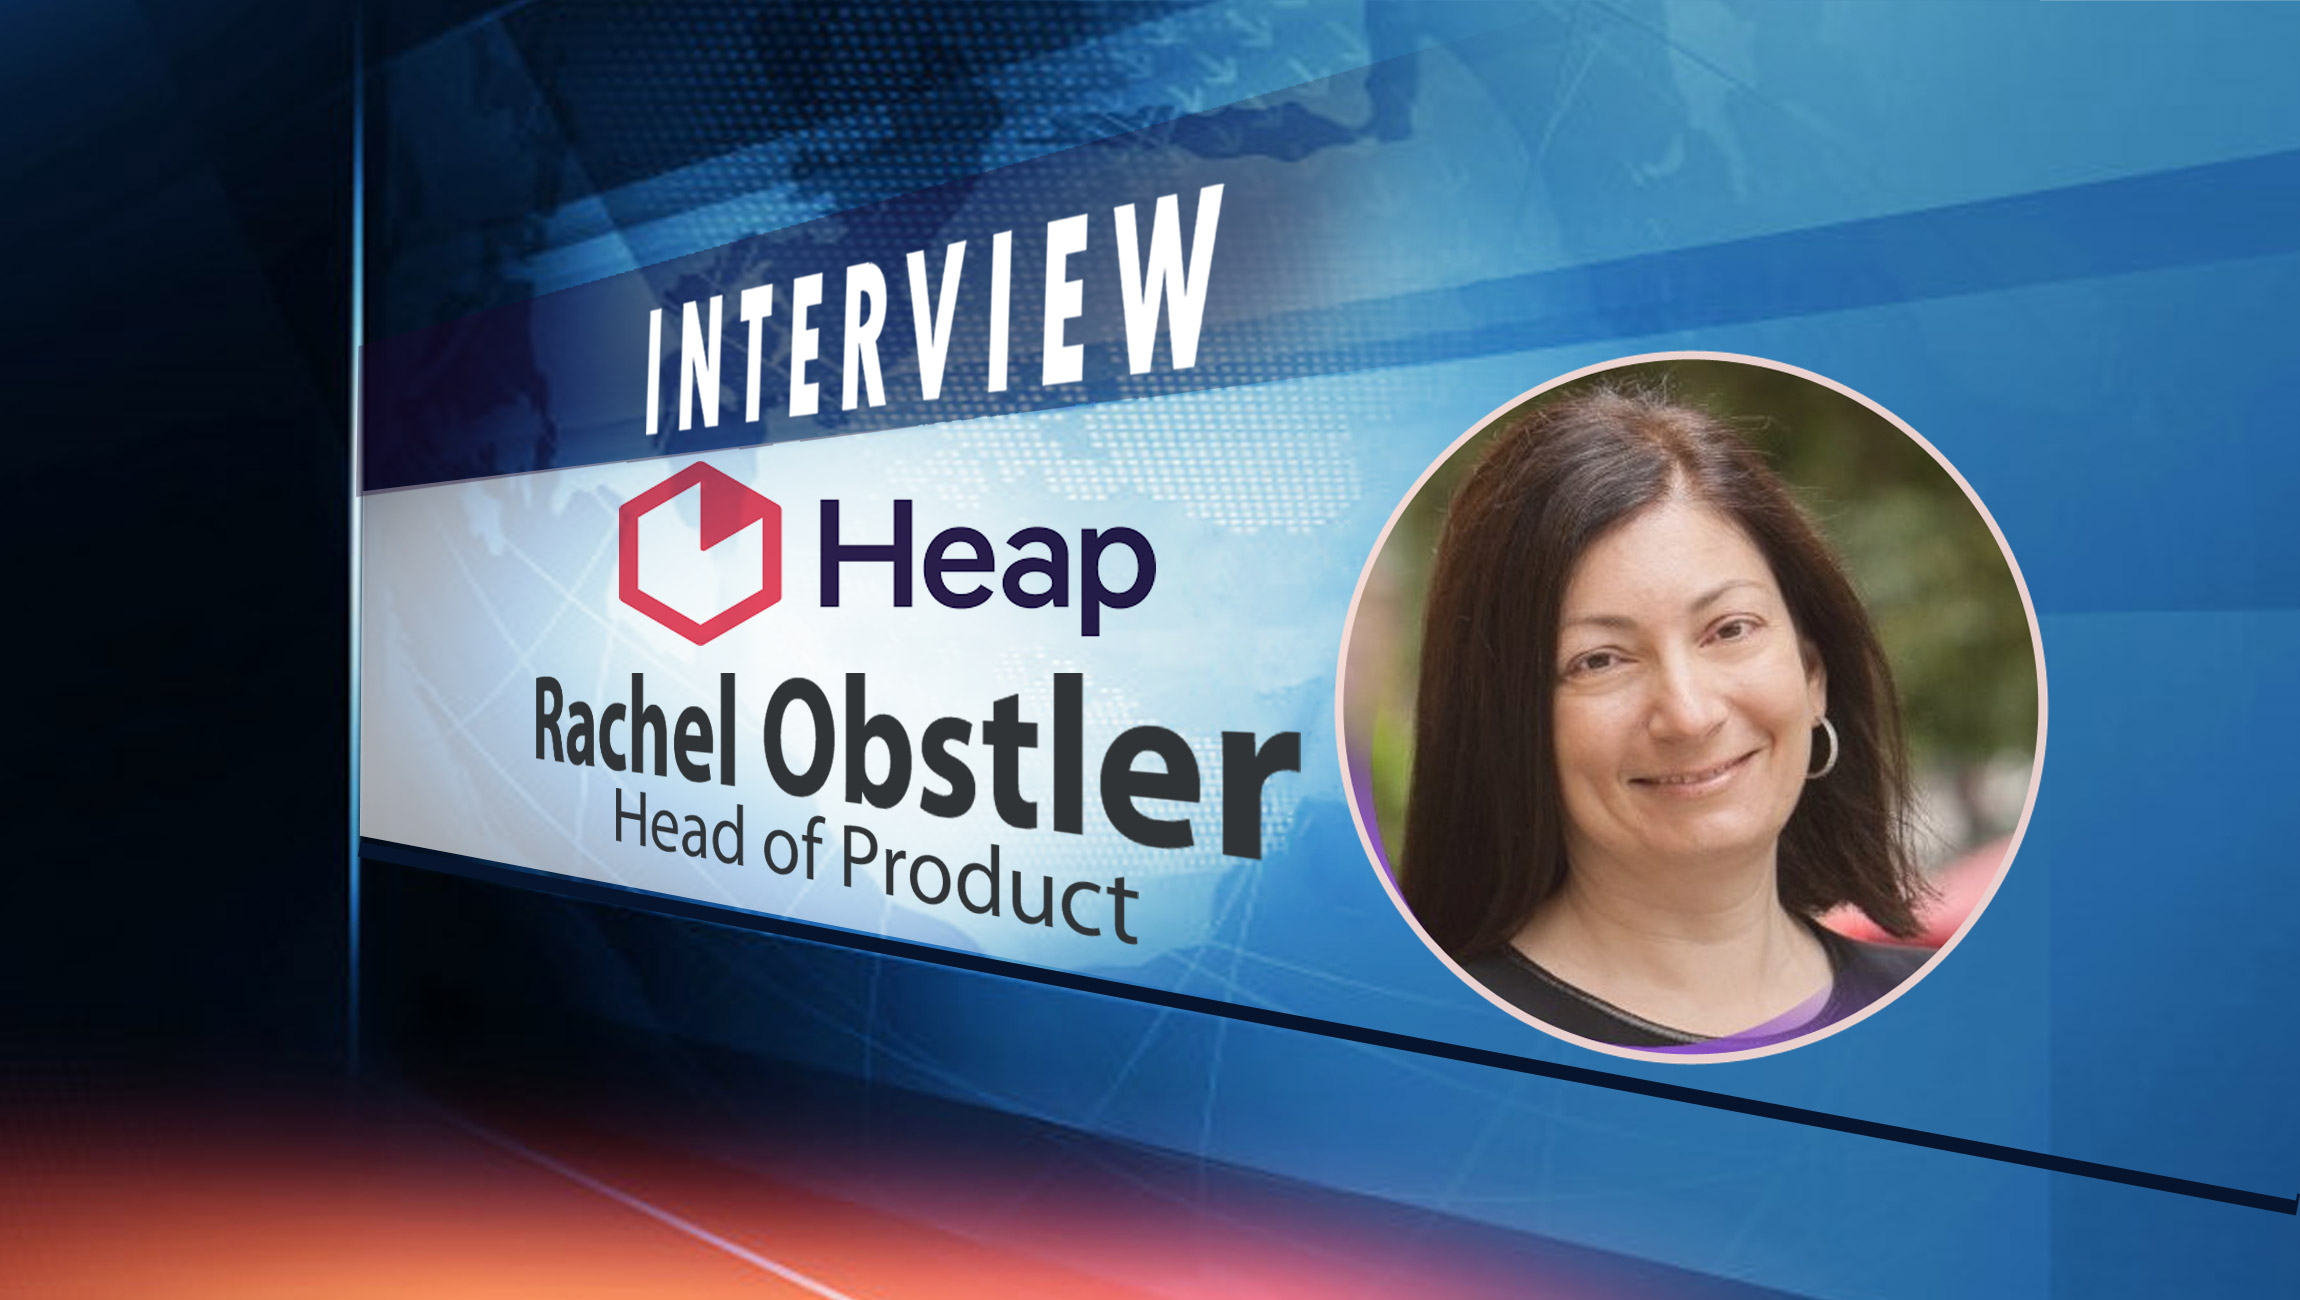 SalesTechStar Interview with Rachel Obstler, Head of Product at Heap